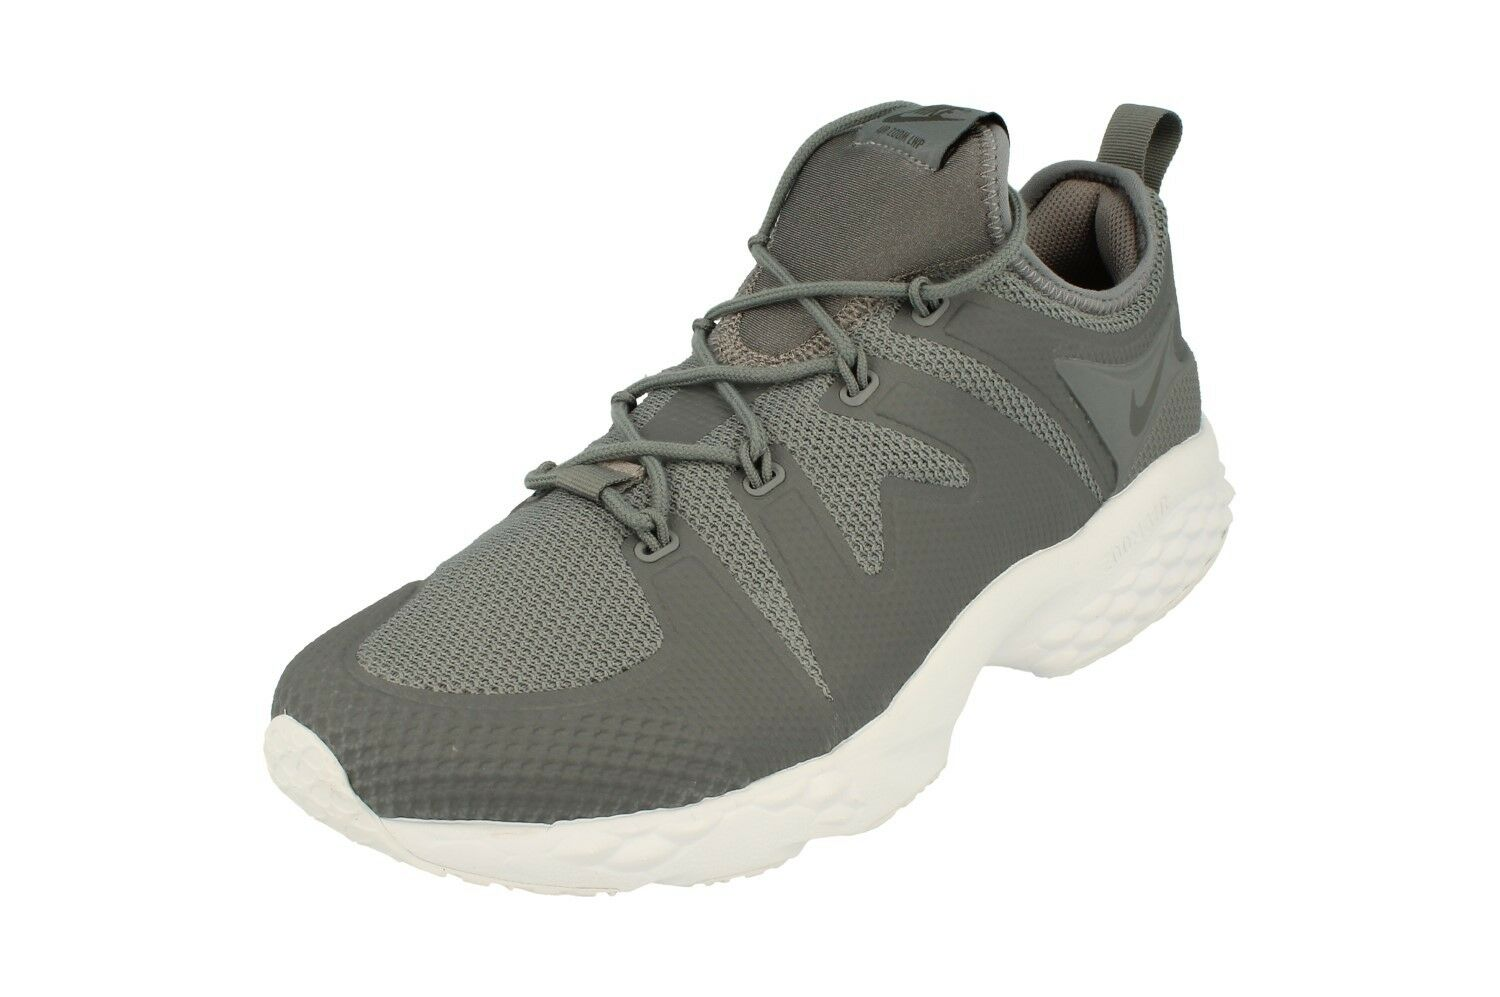 Nike Air Zoom Lwp 16 Mens Running Trainers 918226 Turnschuhe schuhe 004